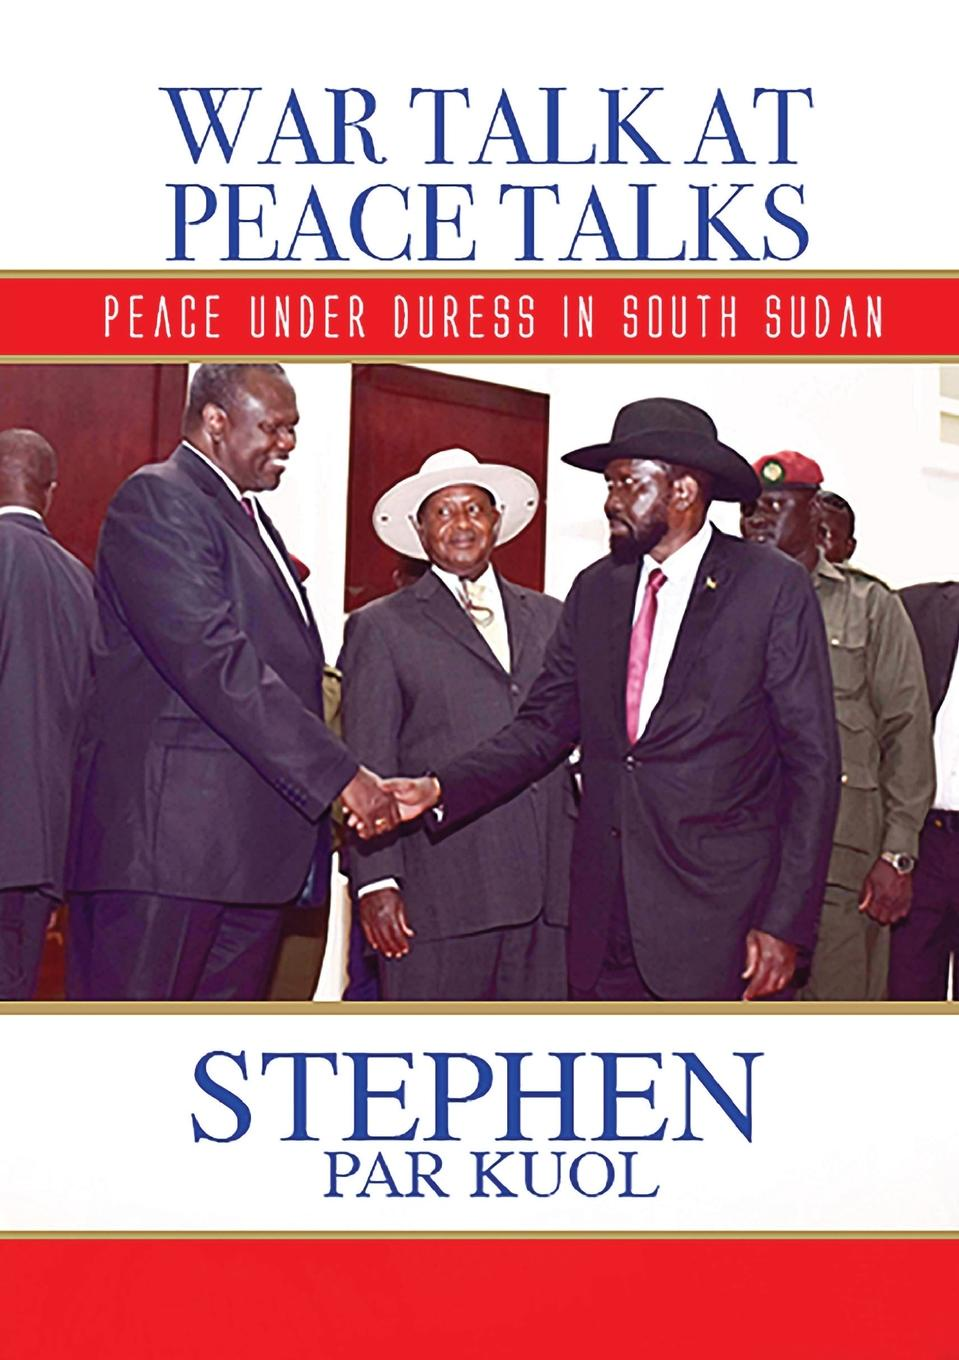 STEPHEN PAR KUOL WAR TALK AT PEACE TALKS. PEACE UNDER DURESS IN SOUTH SUDAN phlebotomine sand flies of central sudan